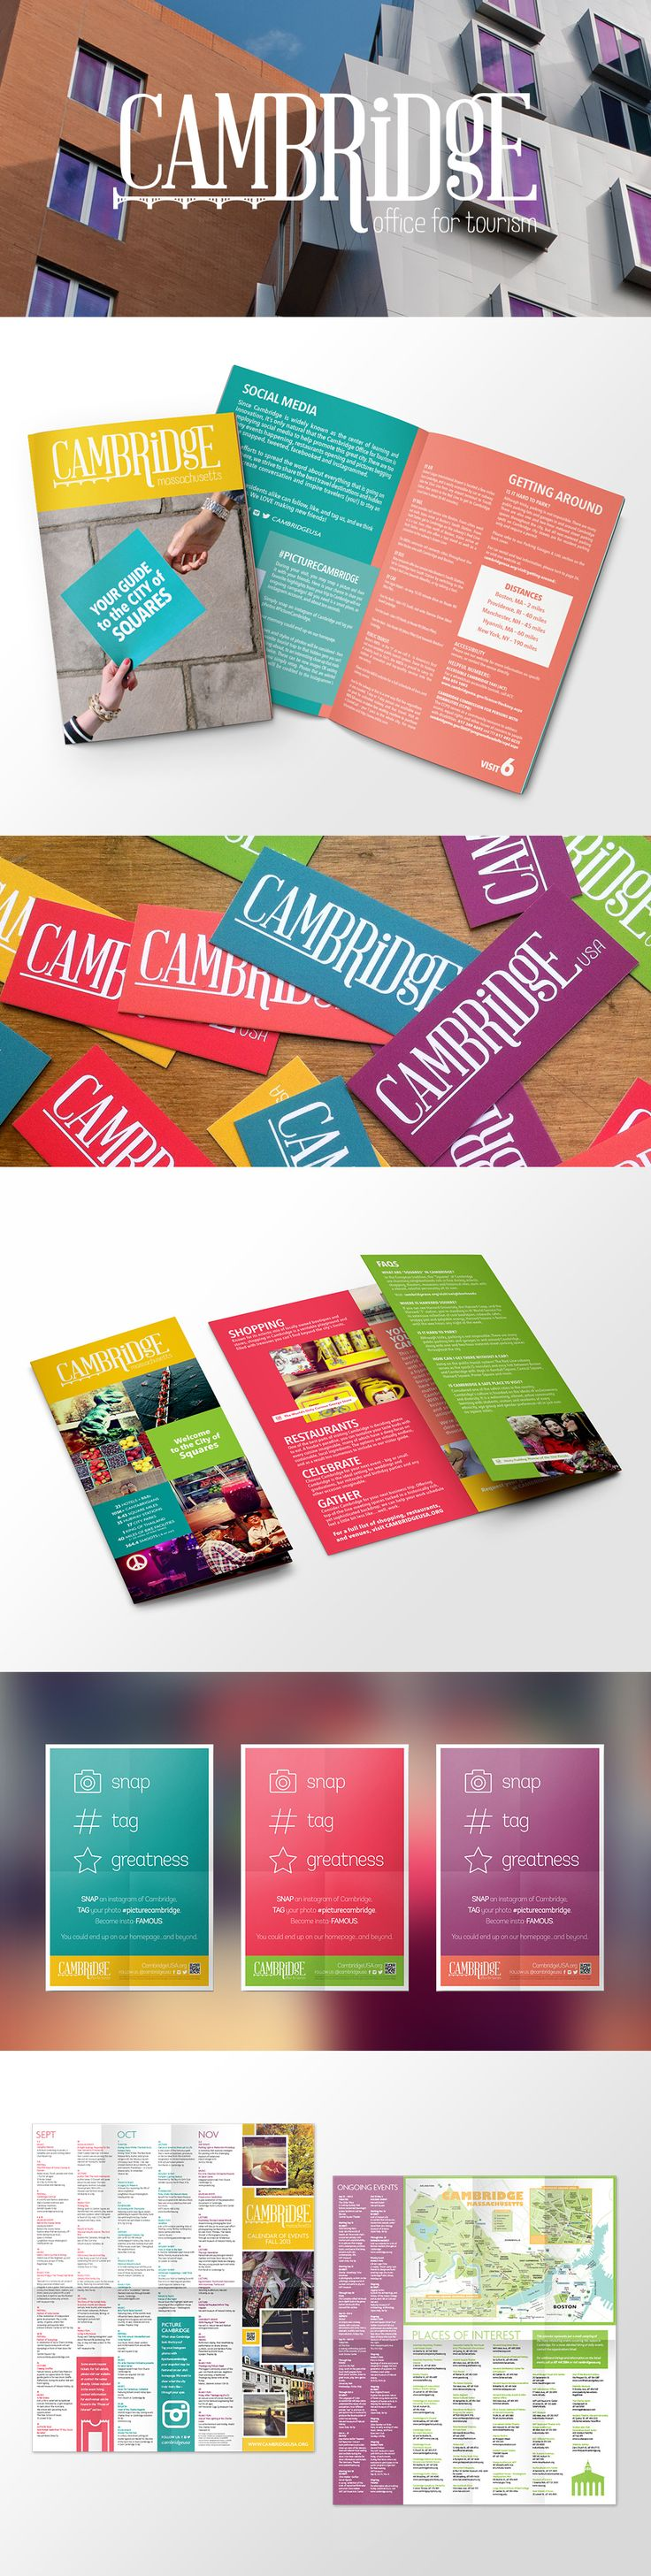 Cambridge Office for Tourism Branding by JSGD